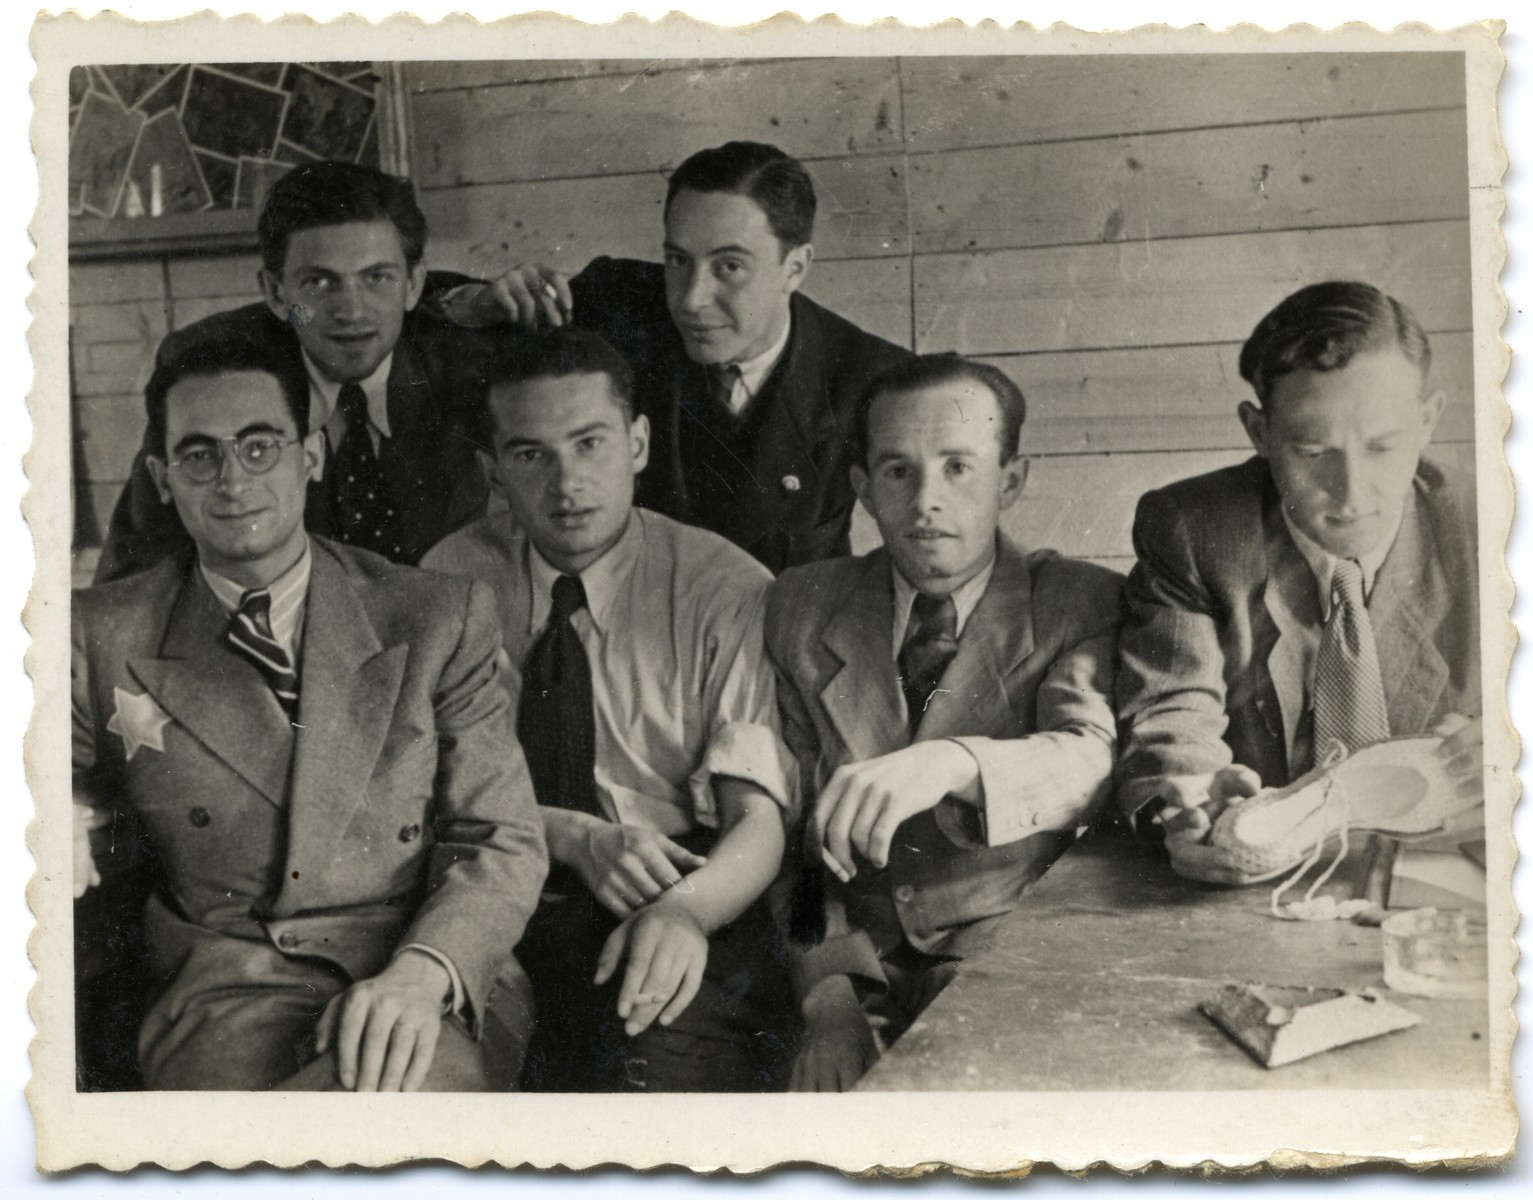 Group portrait of employees of the leather workshop in the Lodz ghetto.  Among those pictured is Leon Fajtlowicz (front, left).  He was the uncle of the donor and in charge of all the leather workshops in the ghetto.